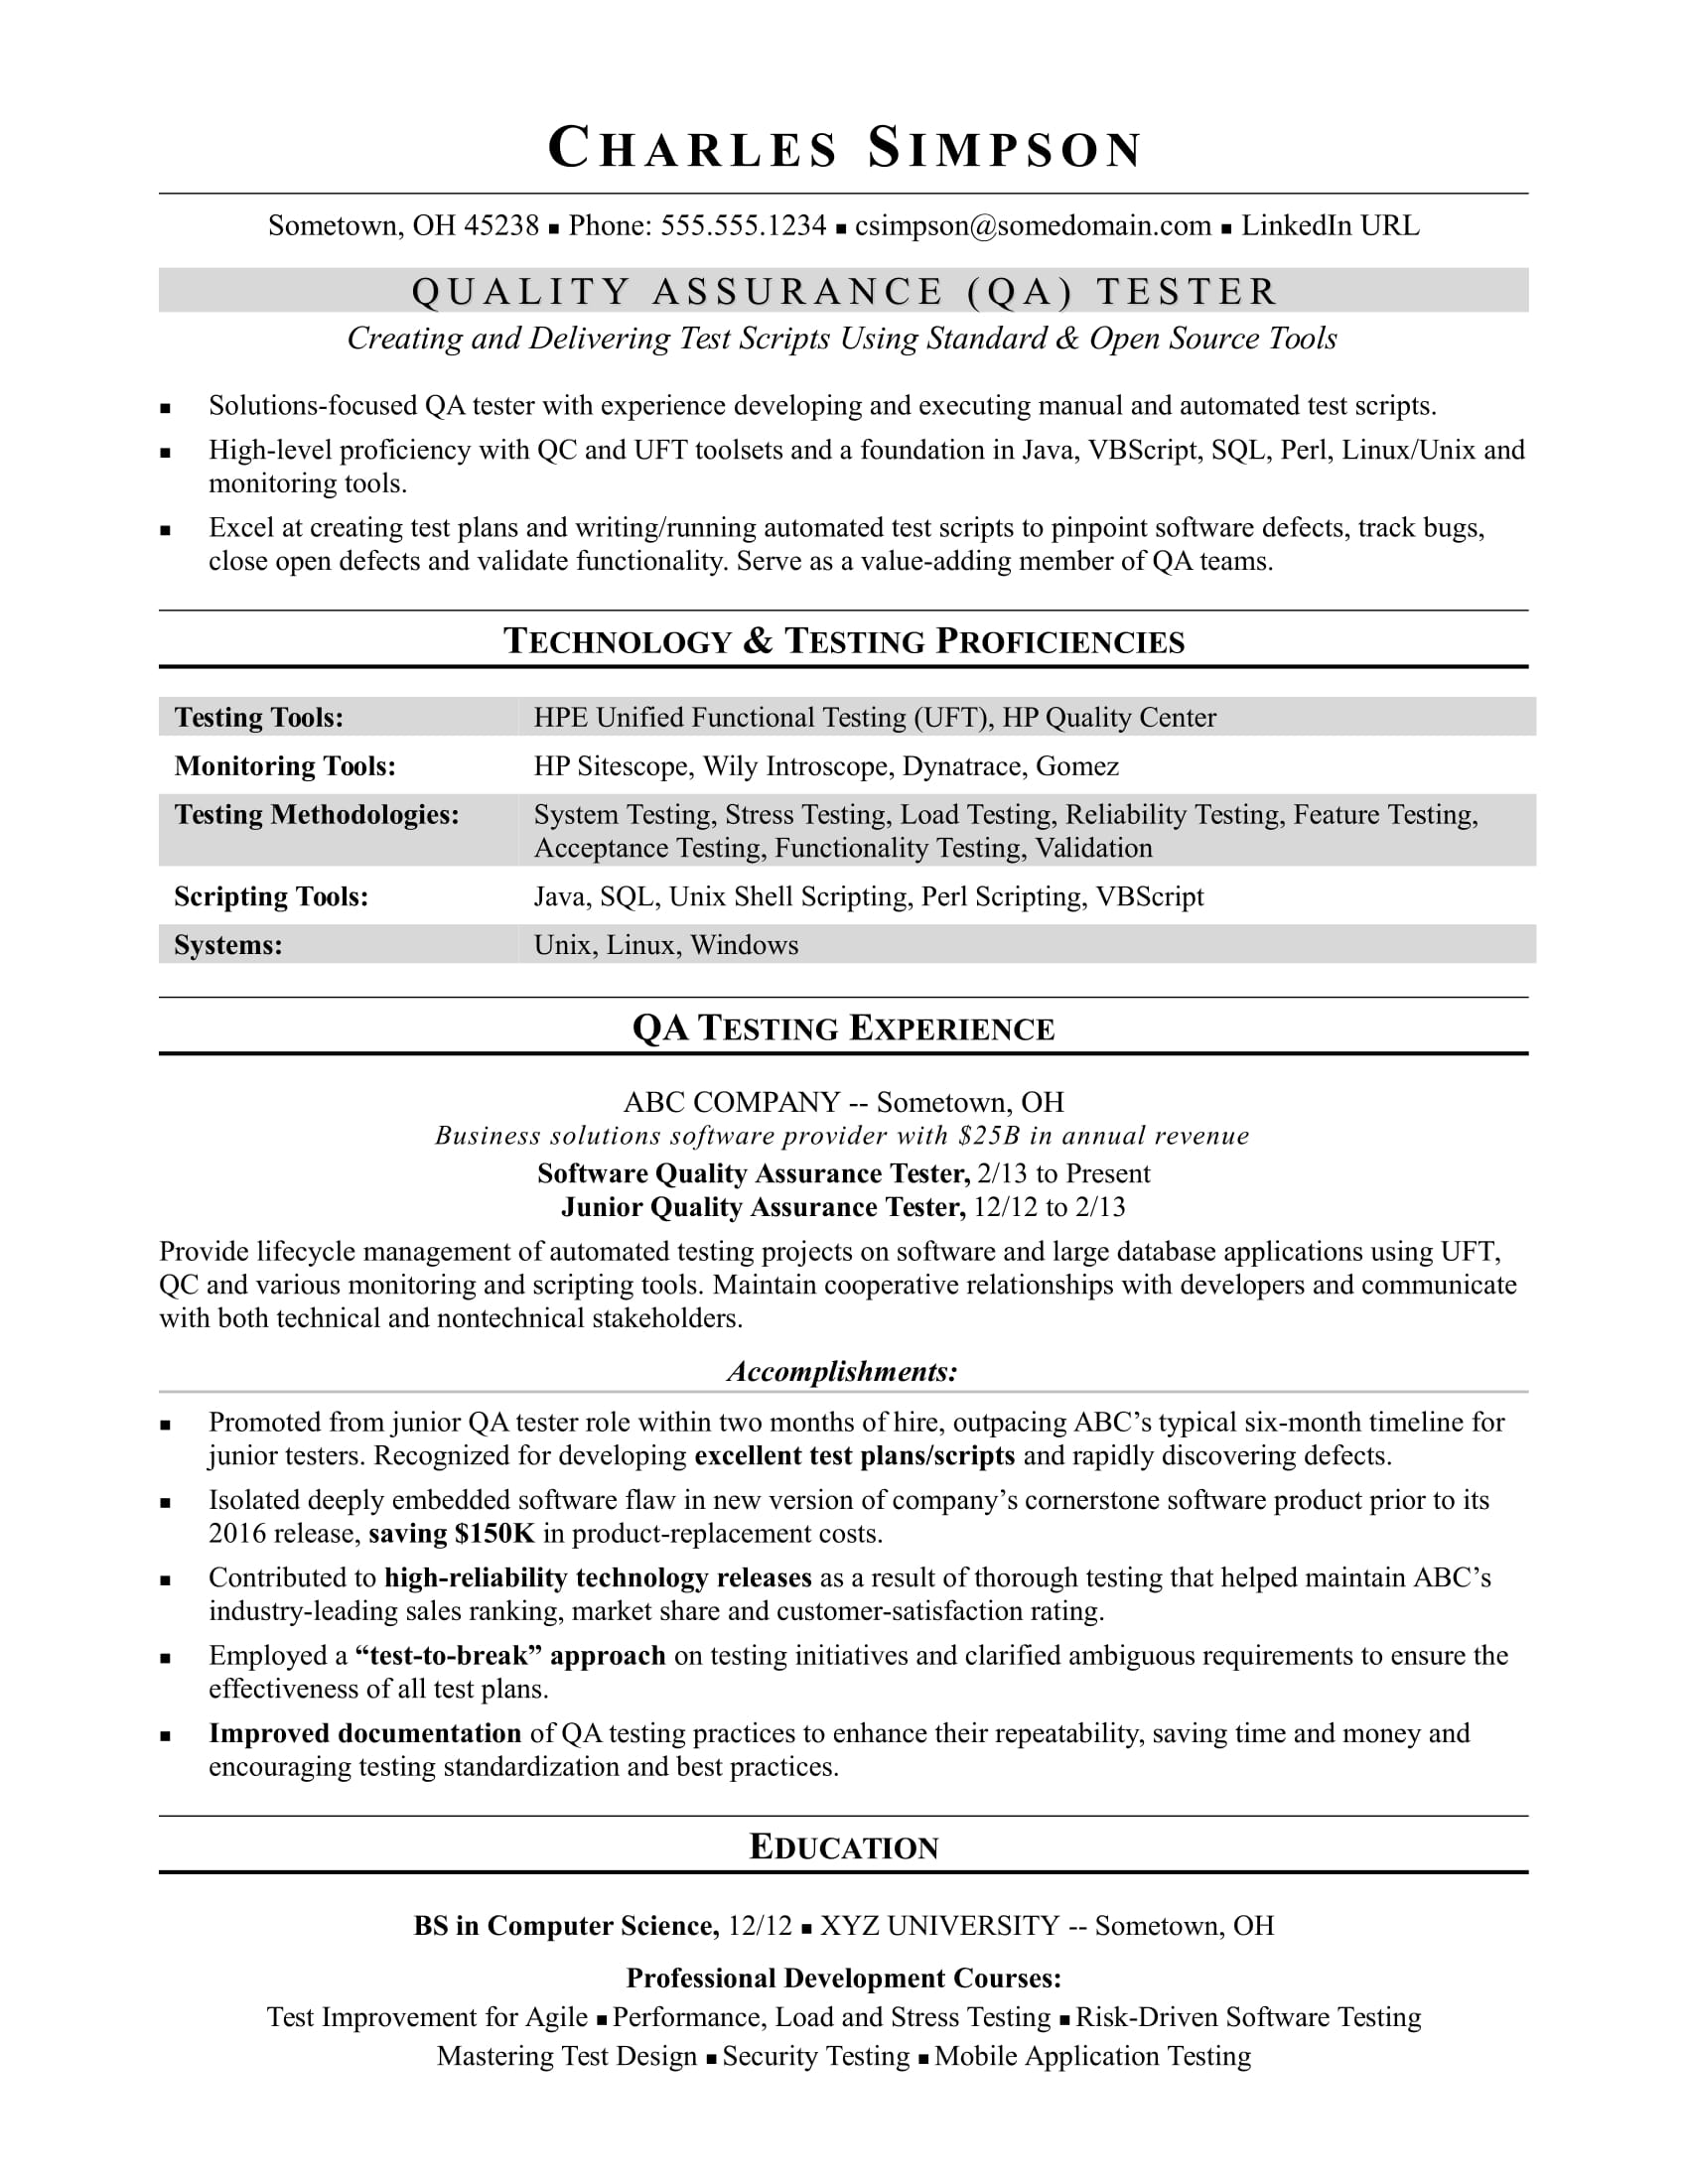 resume Resume Rating System sample resume for a midlevel qa software tester monster com tester